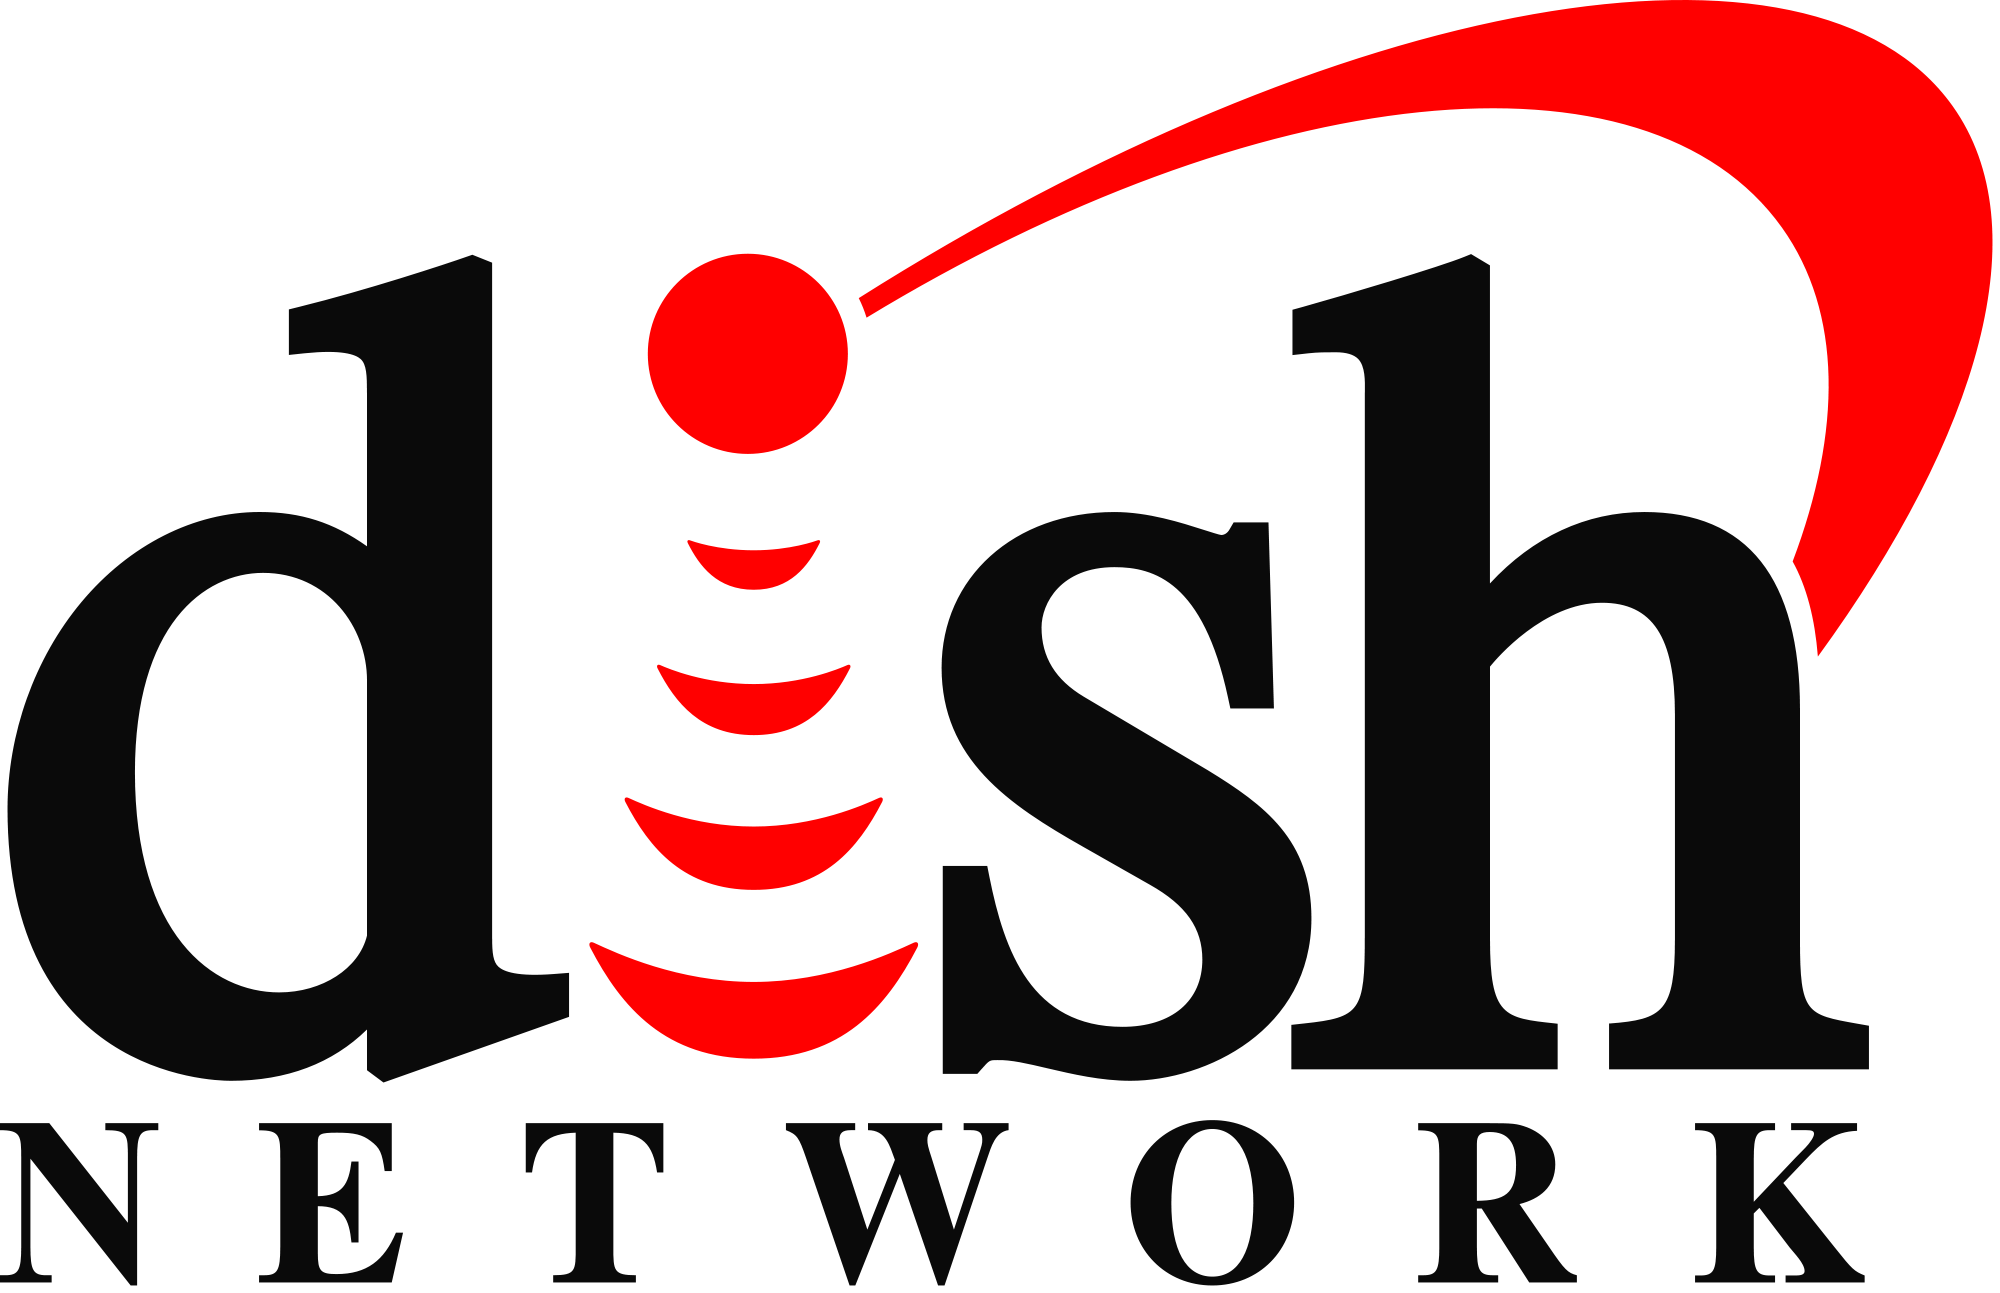 Dish Network may owe you $1200 for telemarketing calls